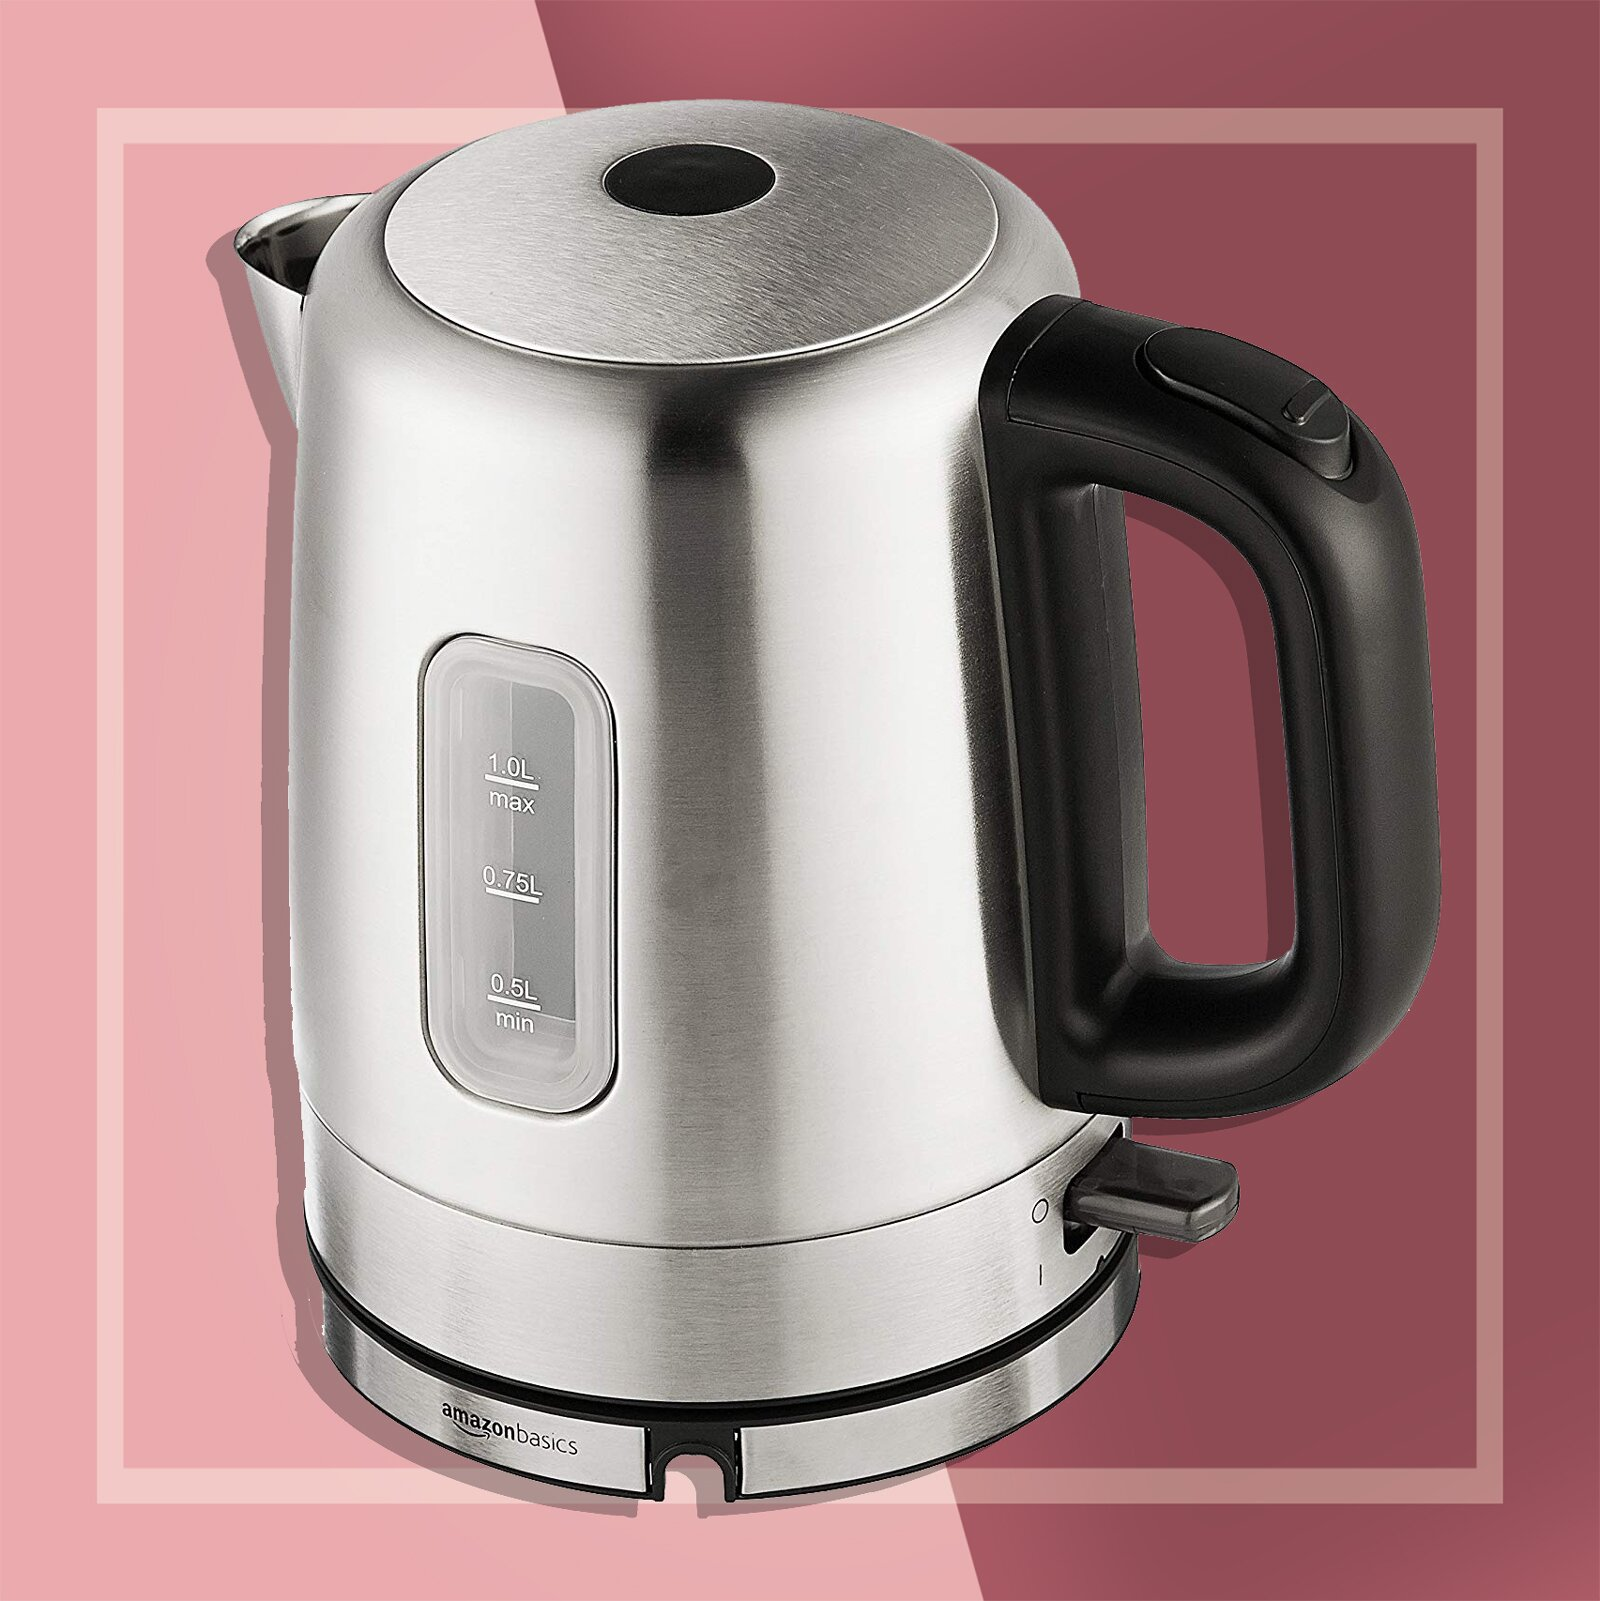 Amazon Basics Electric Kettle